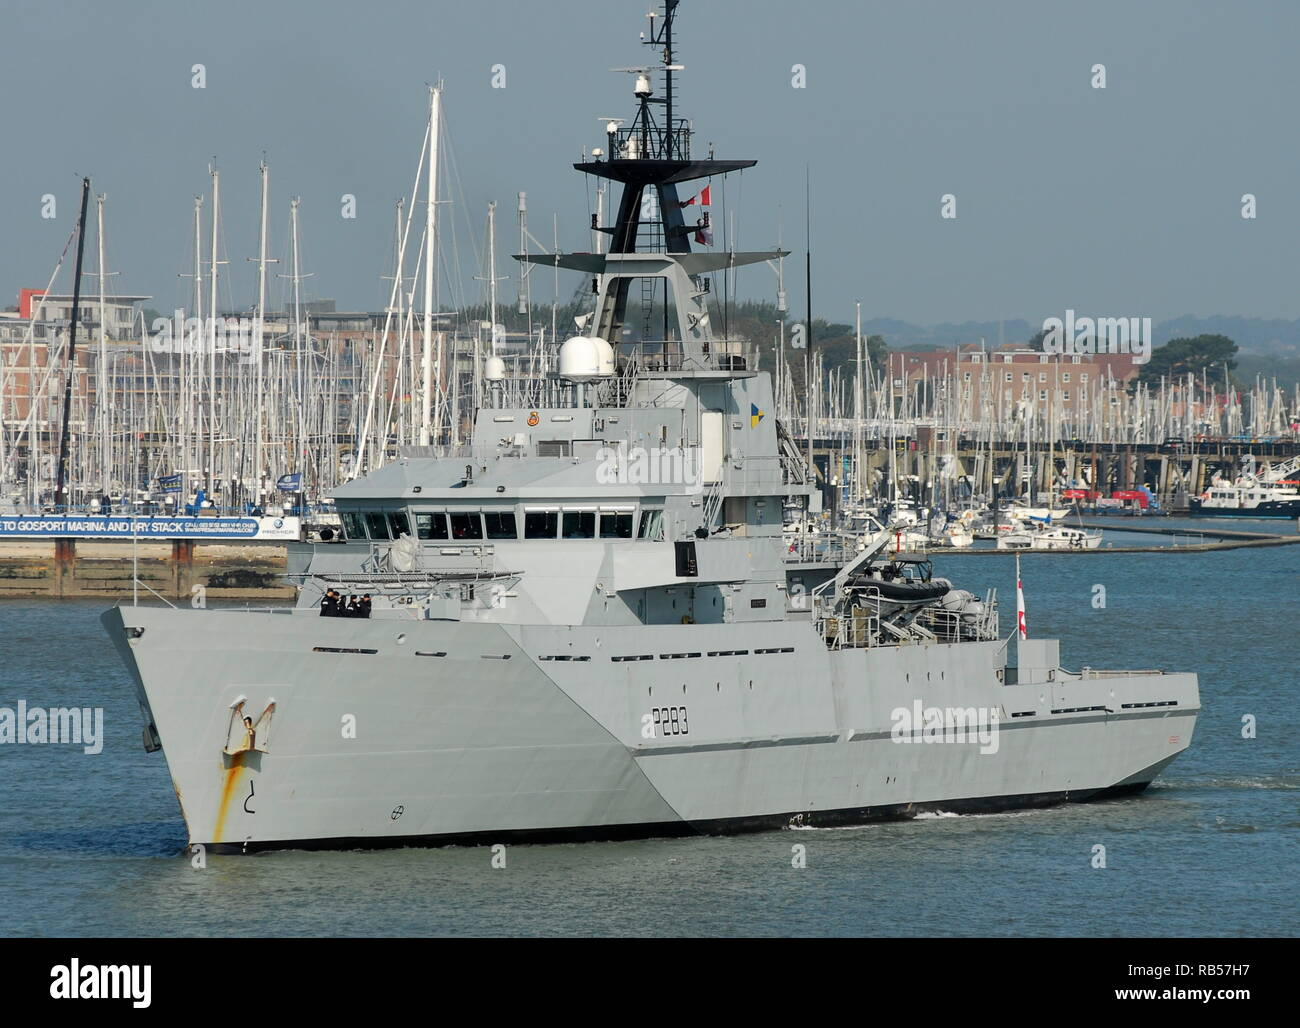 AJAXNETPHOTO.12TH SEPT, 2014. PORTSMOUTH, ENGLAND. - PATROL SHP - HMS MERSEY LEAVING HARBOUR. UPDATE 7TH JAN 2019; ROYAL NAVY DEPLOYED HMS MERSEY TO CHANNEL TO 'HELP PREVENT MIGRANTS MAKING THE DANGEROUS JOURNEY.'. PHOTO:TONY HOLLAND/AJAX REF;DTH141209_1054 - Stock Image